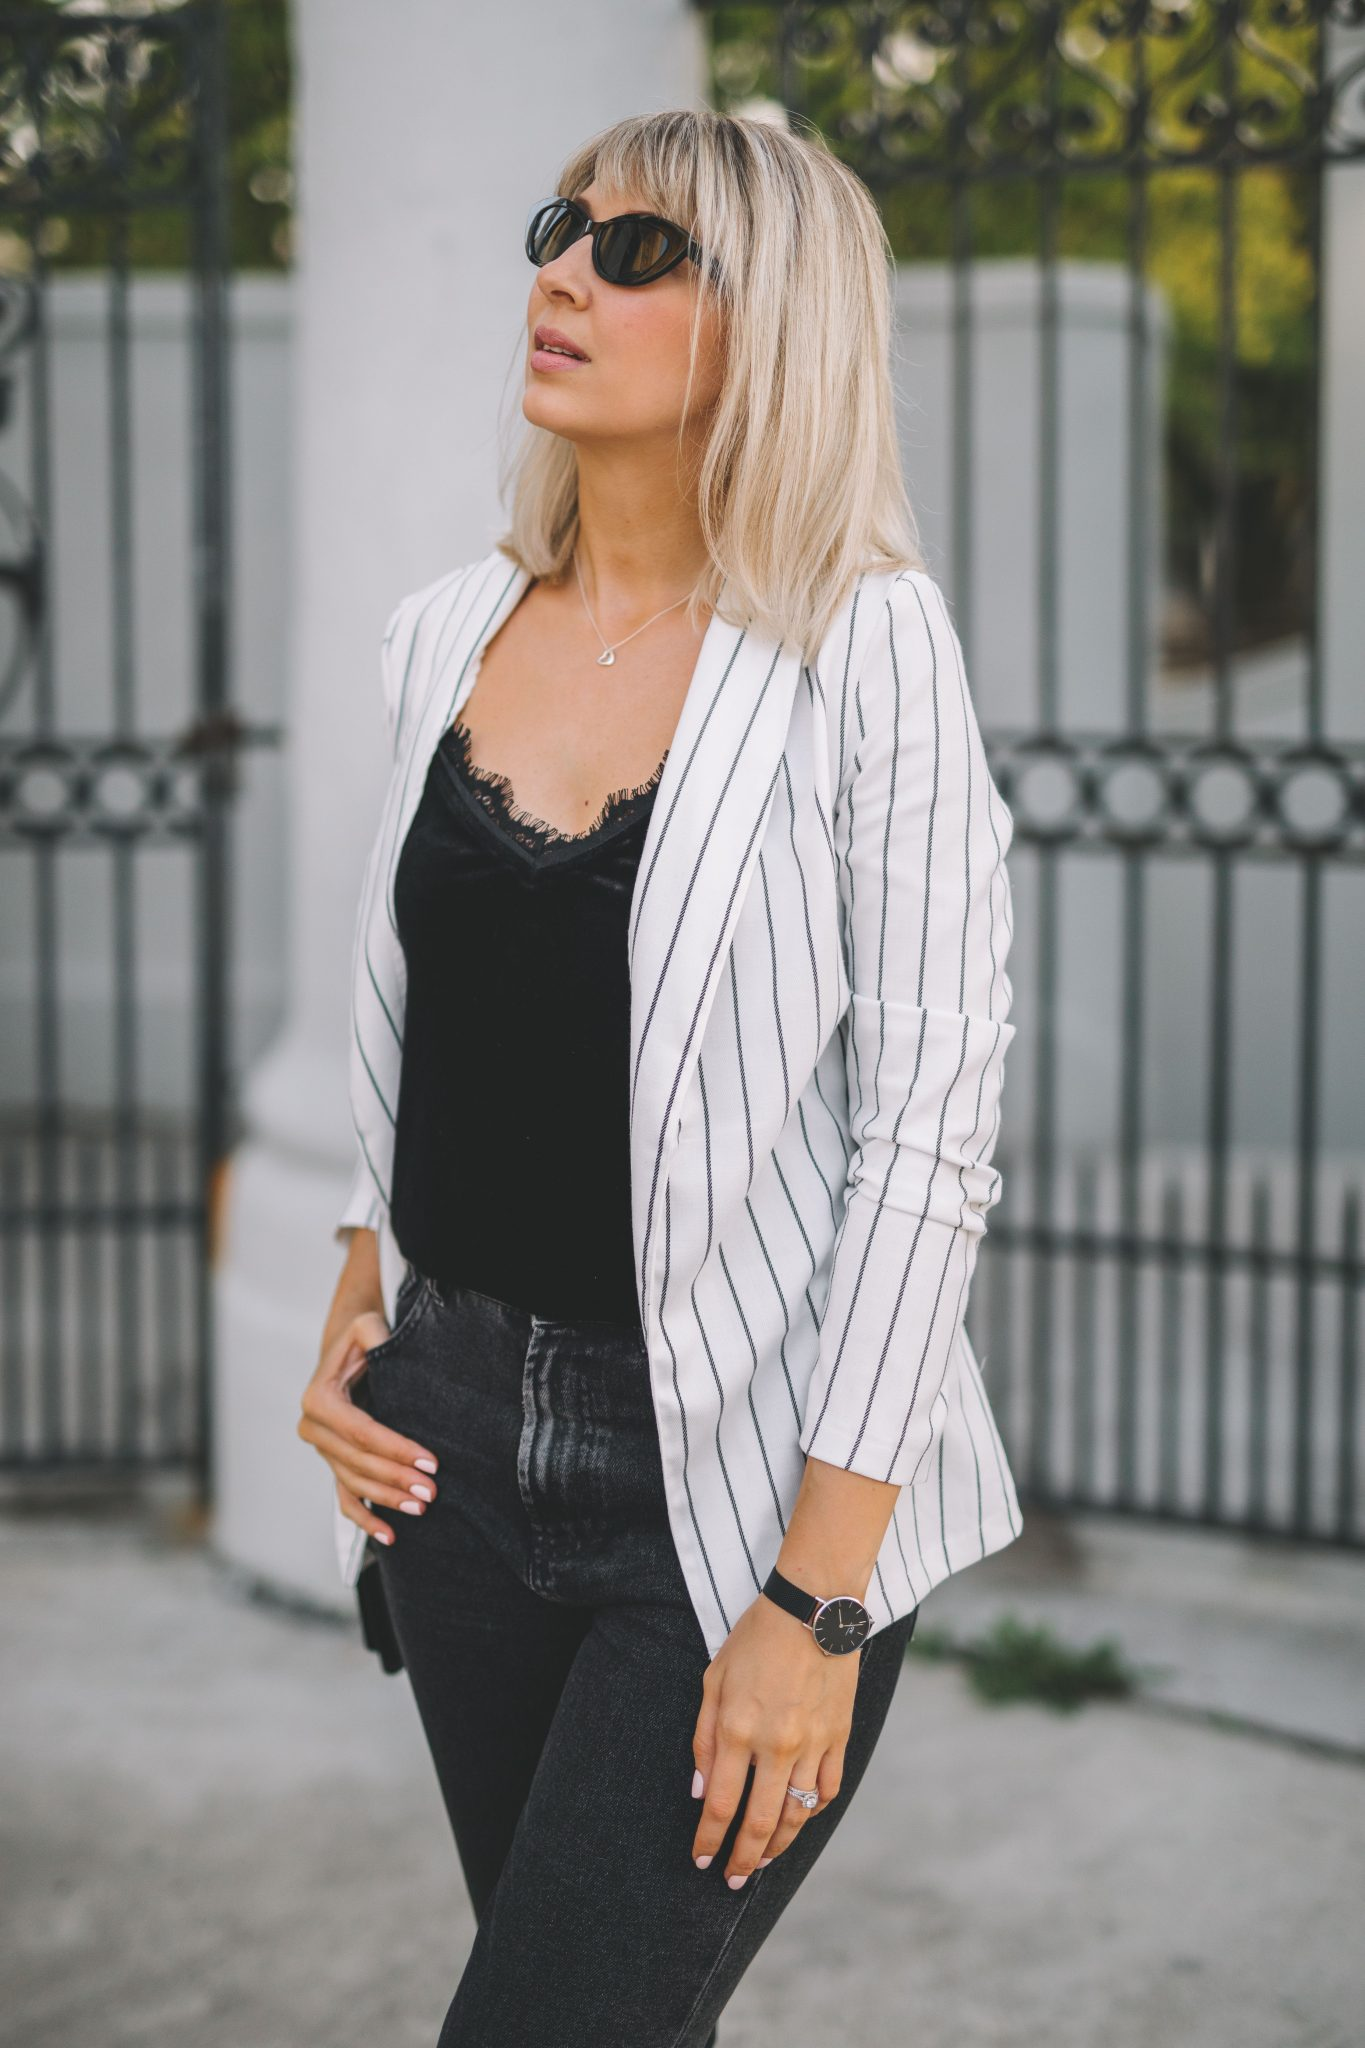 stripe blazer transitionnal style 3